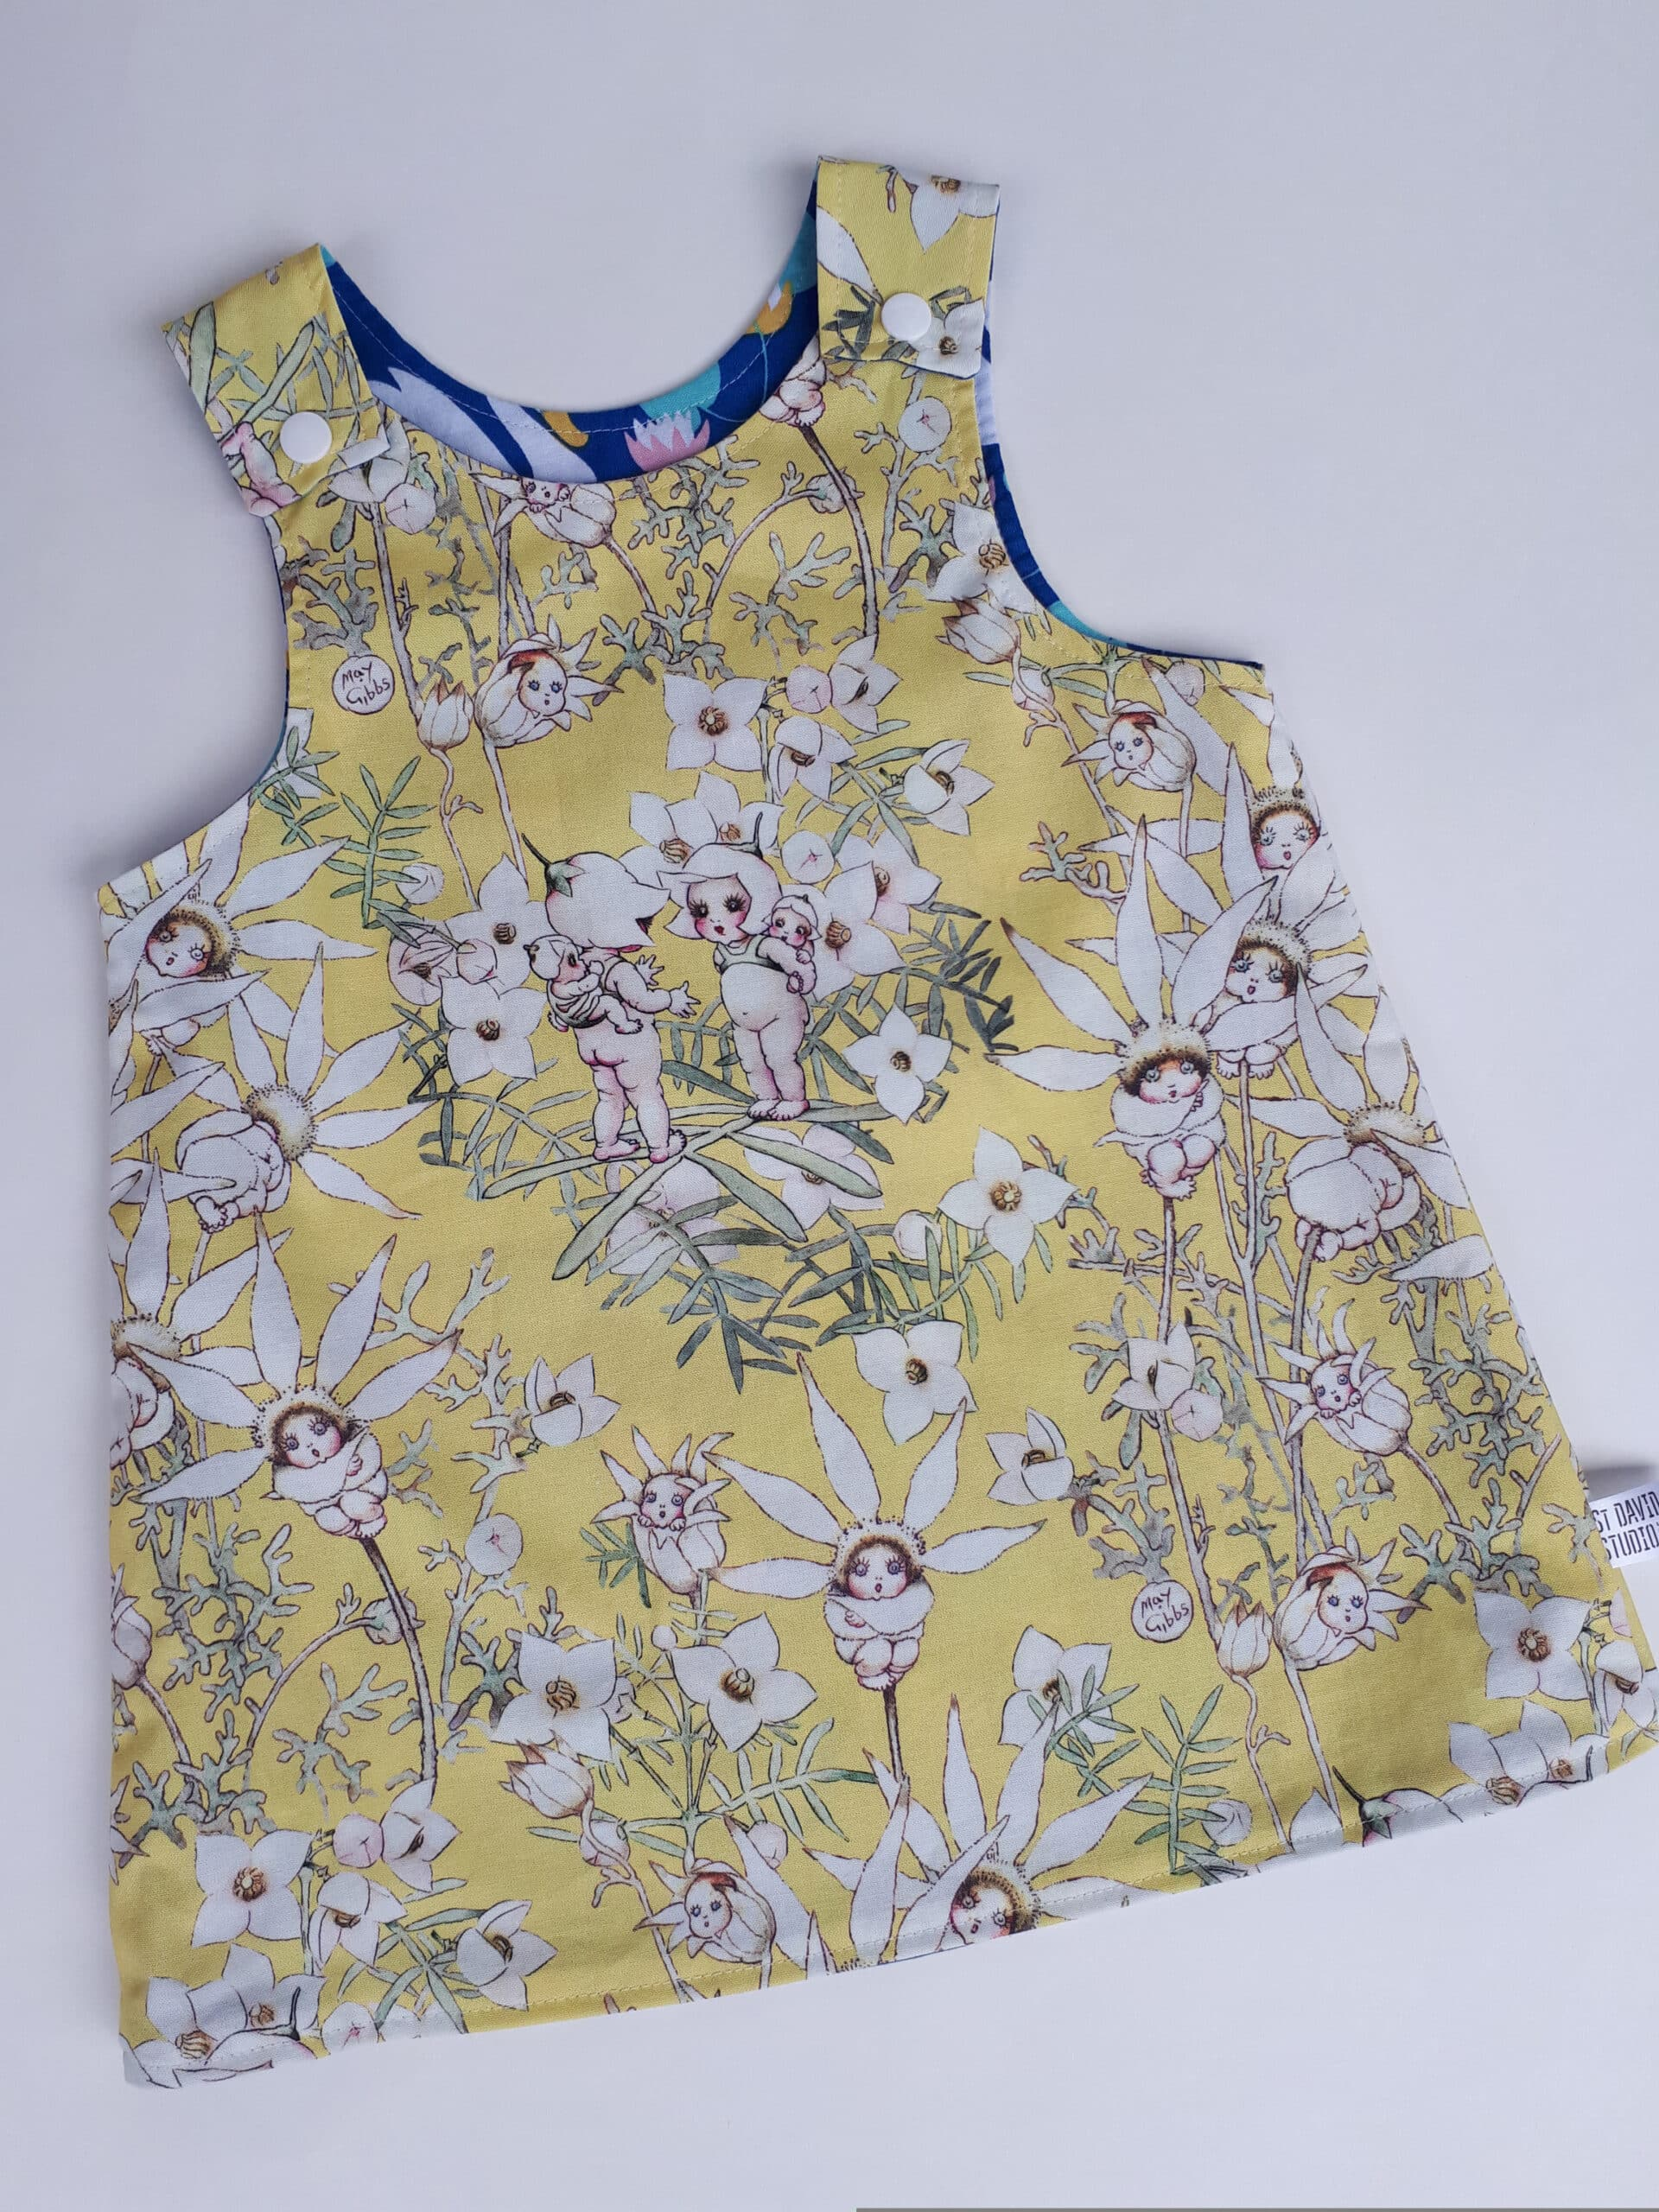 Children's Size 3 Reversible Pinafore Dress – Yellow Flannel Flowers And Swans By St David Studio 3065 Kids